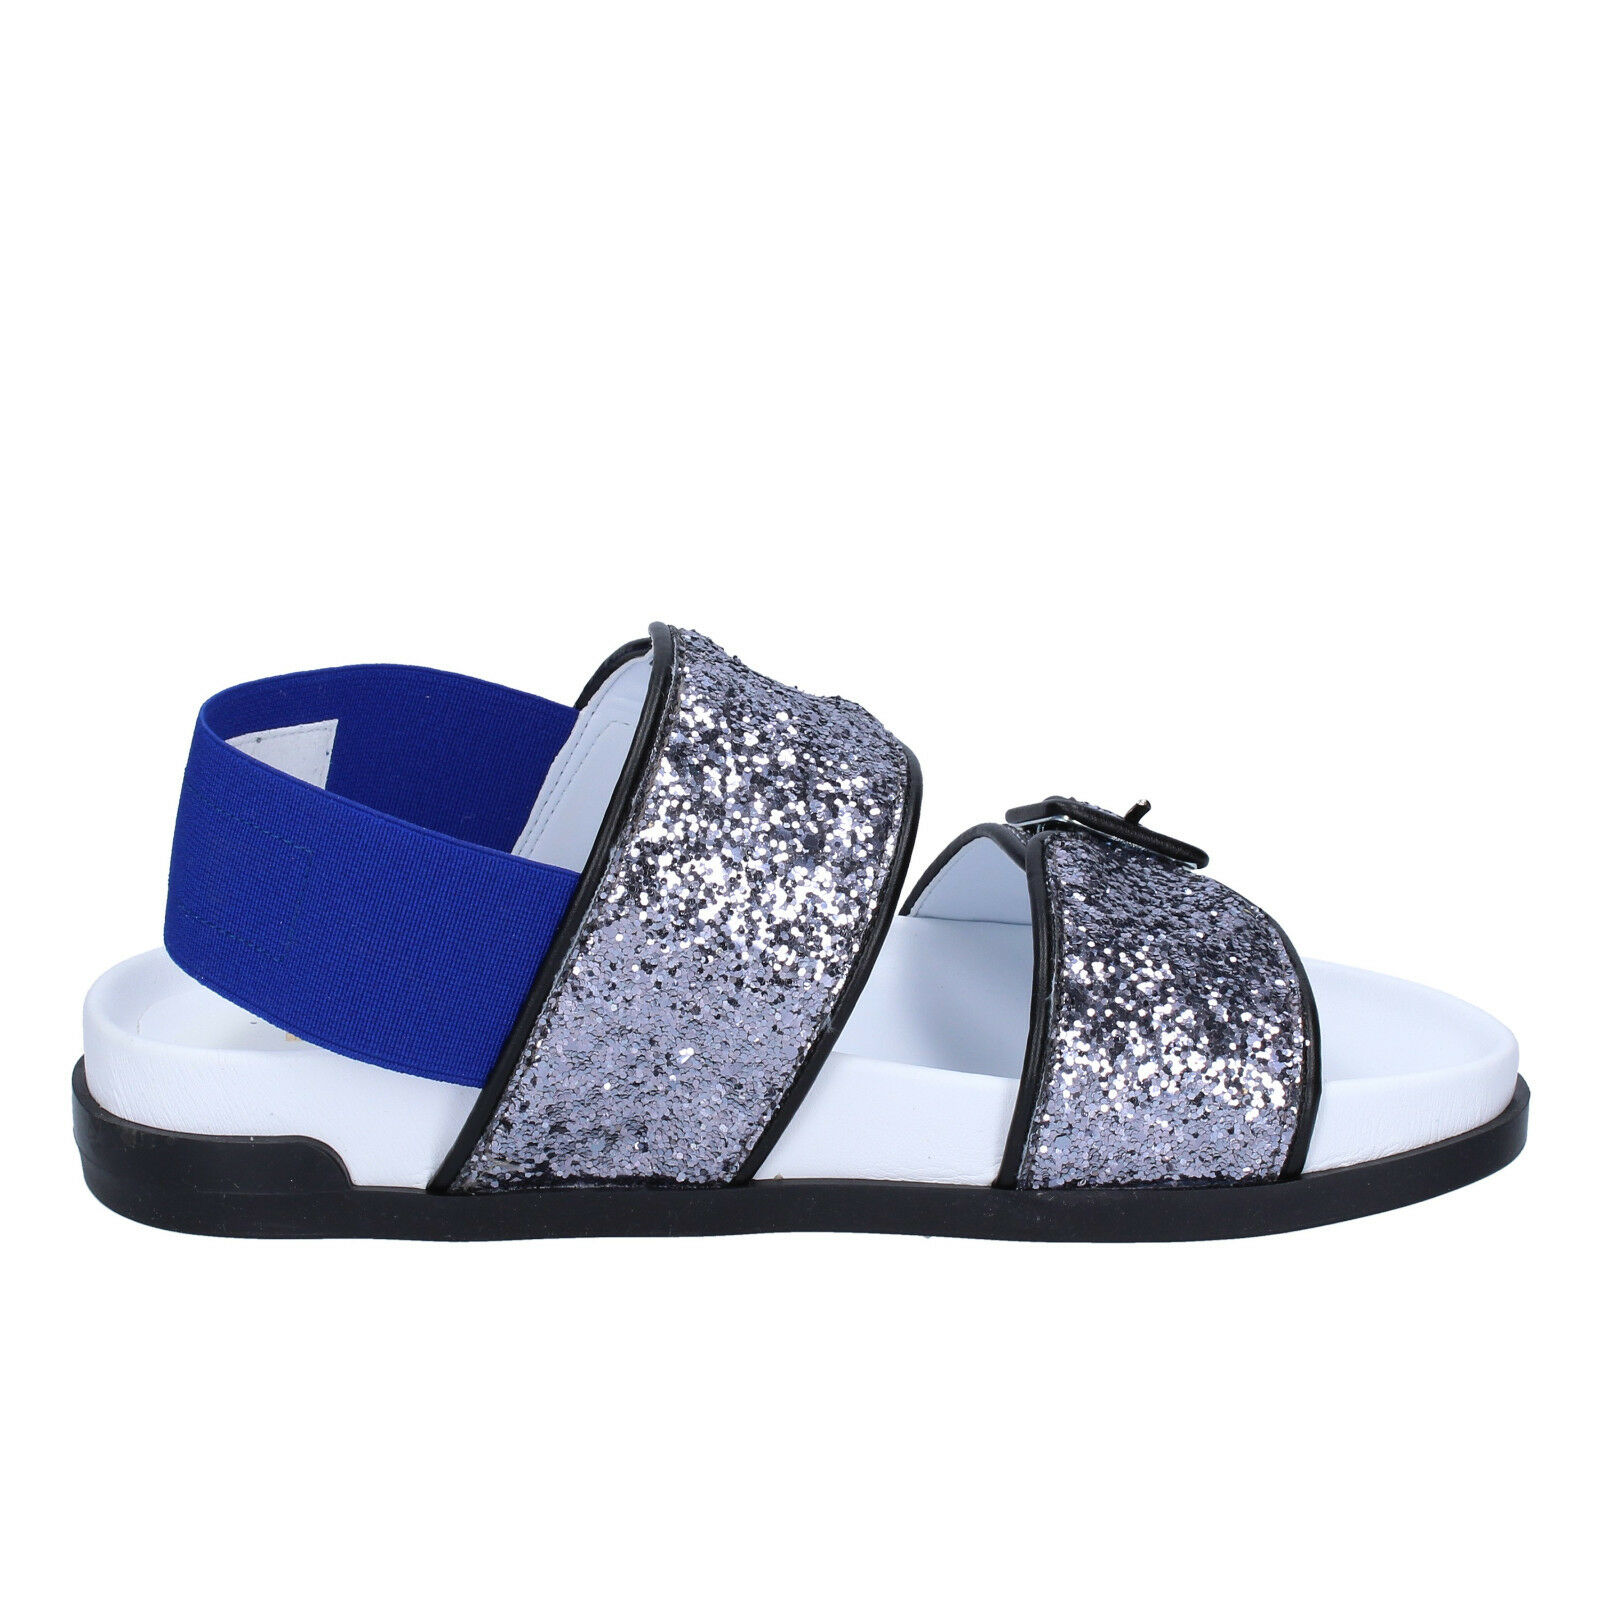 Women's shoes shoes shoes JEANNOT 7 (EU 40) sandals silver bluee glitter textile BT512-40 e9631f